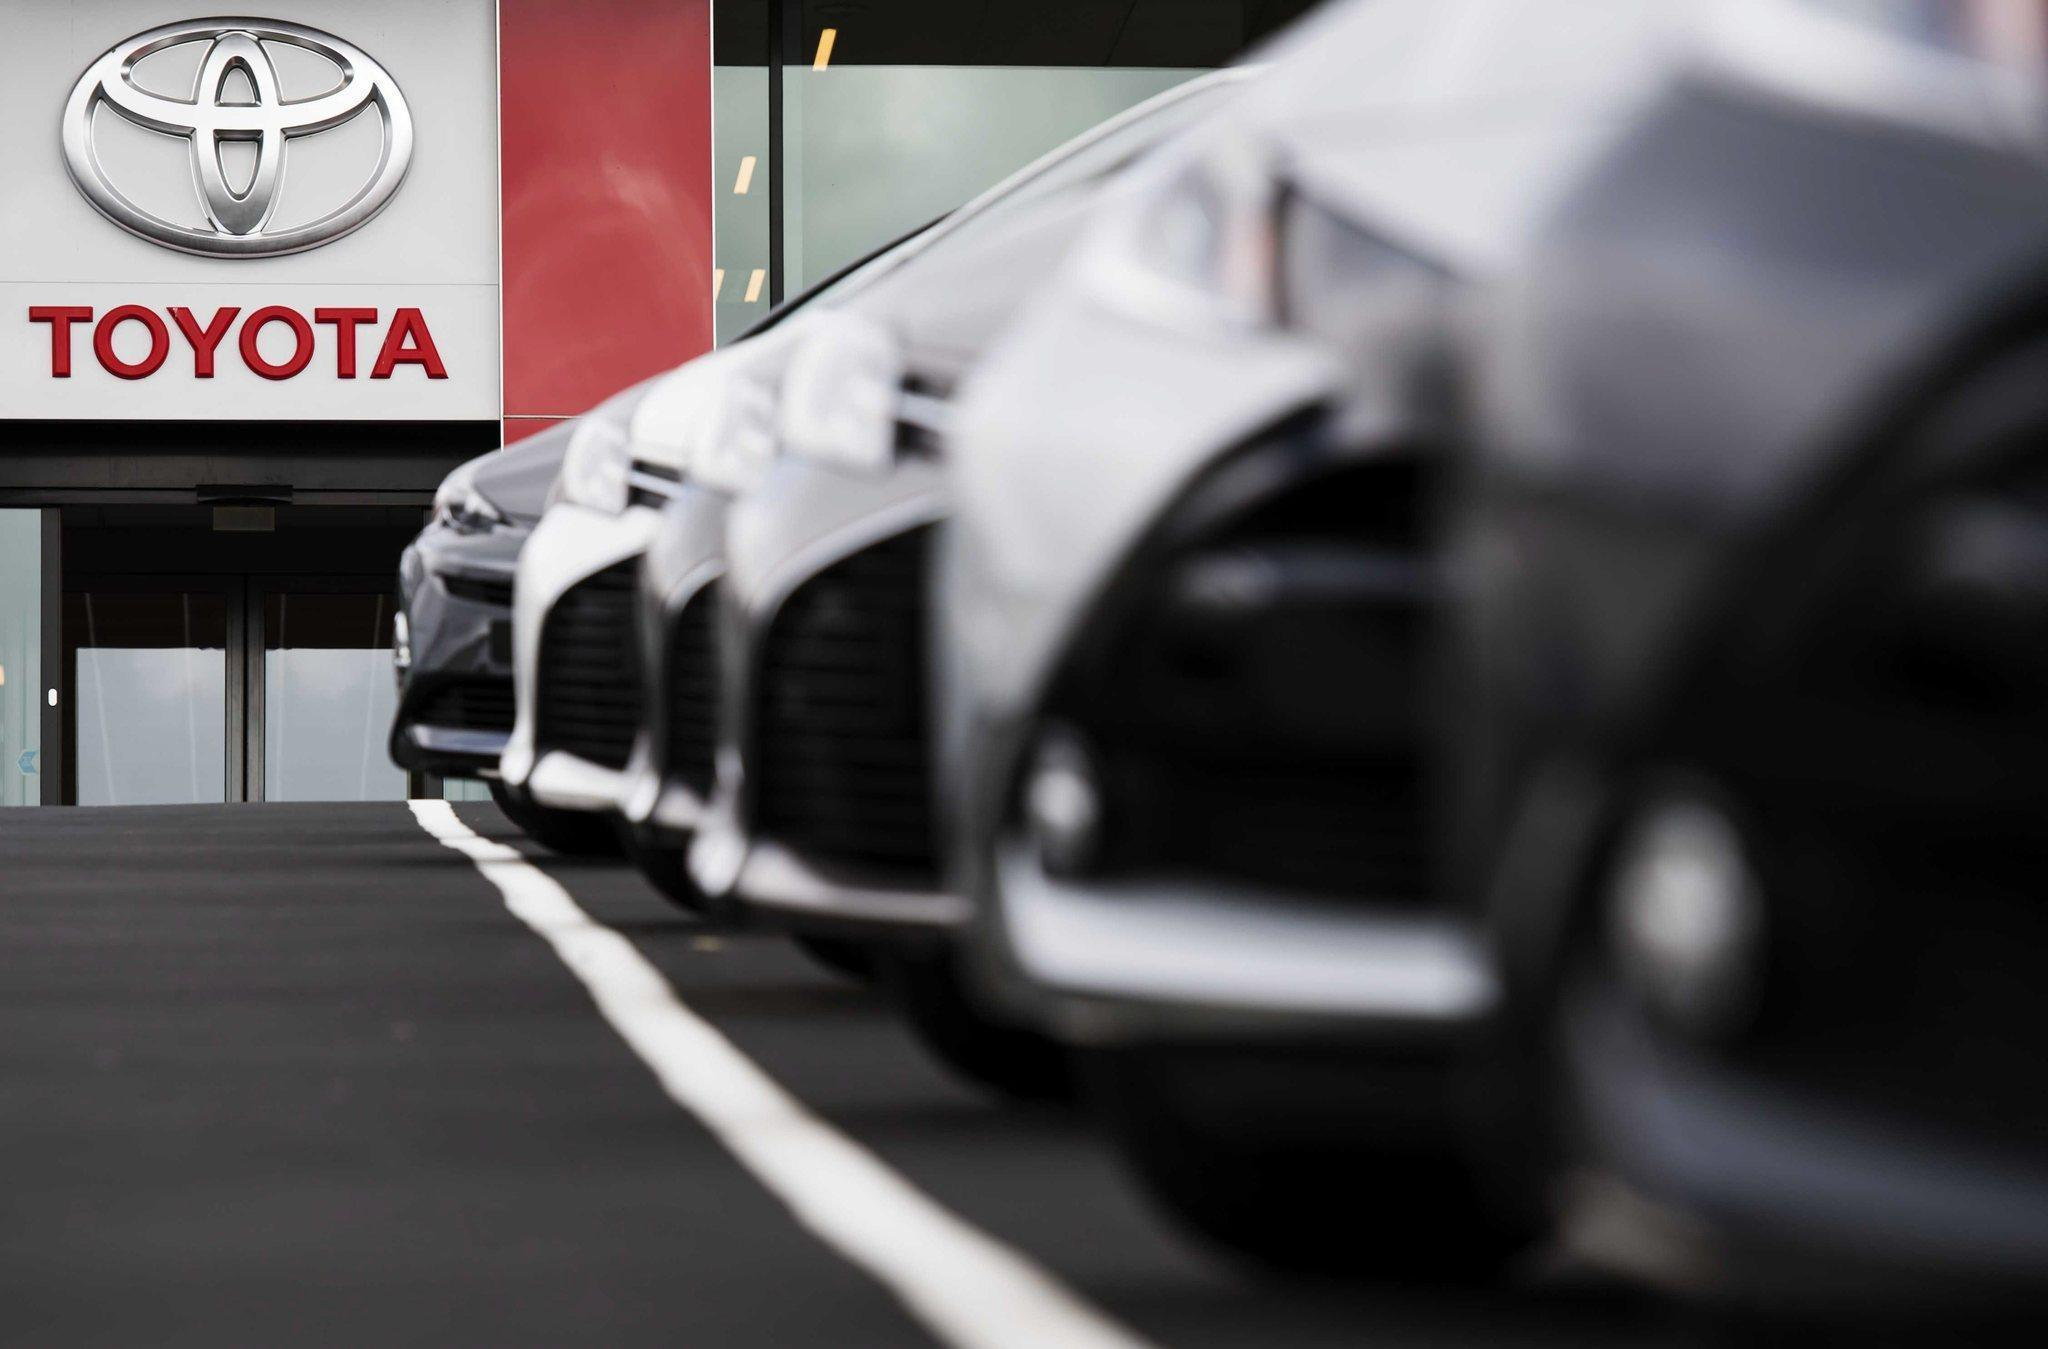 Toyota recalls more than 3 million cars over air bags and emissions controls la times